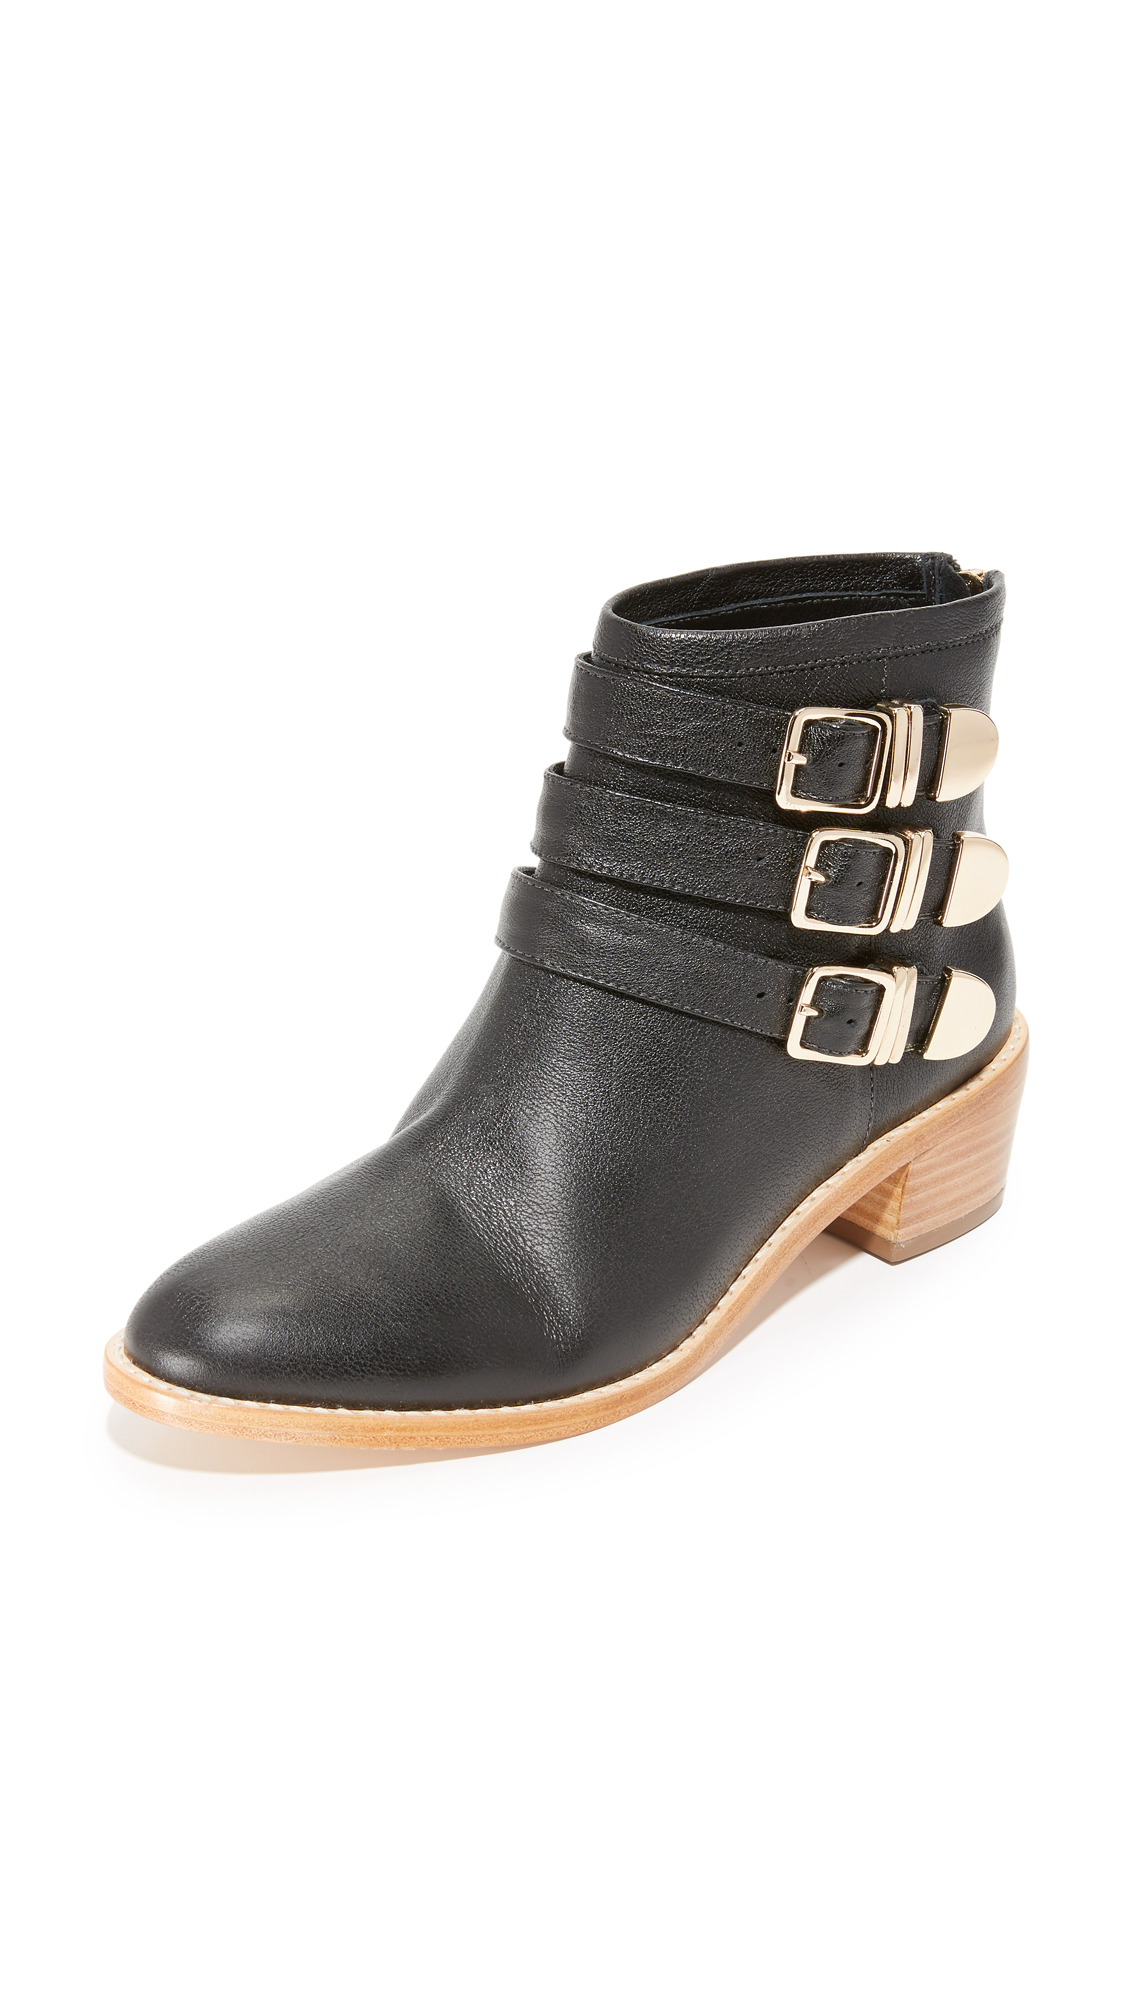 Loeffler Randall Fenton Buckle Booties - Black/Gold